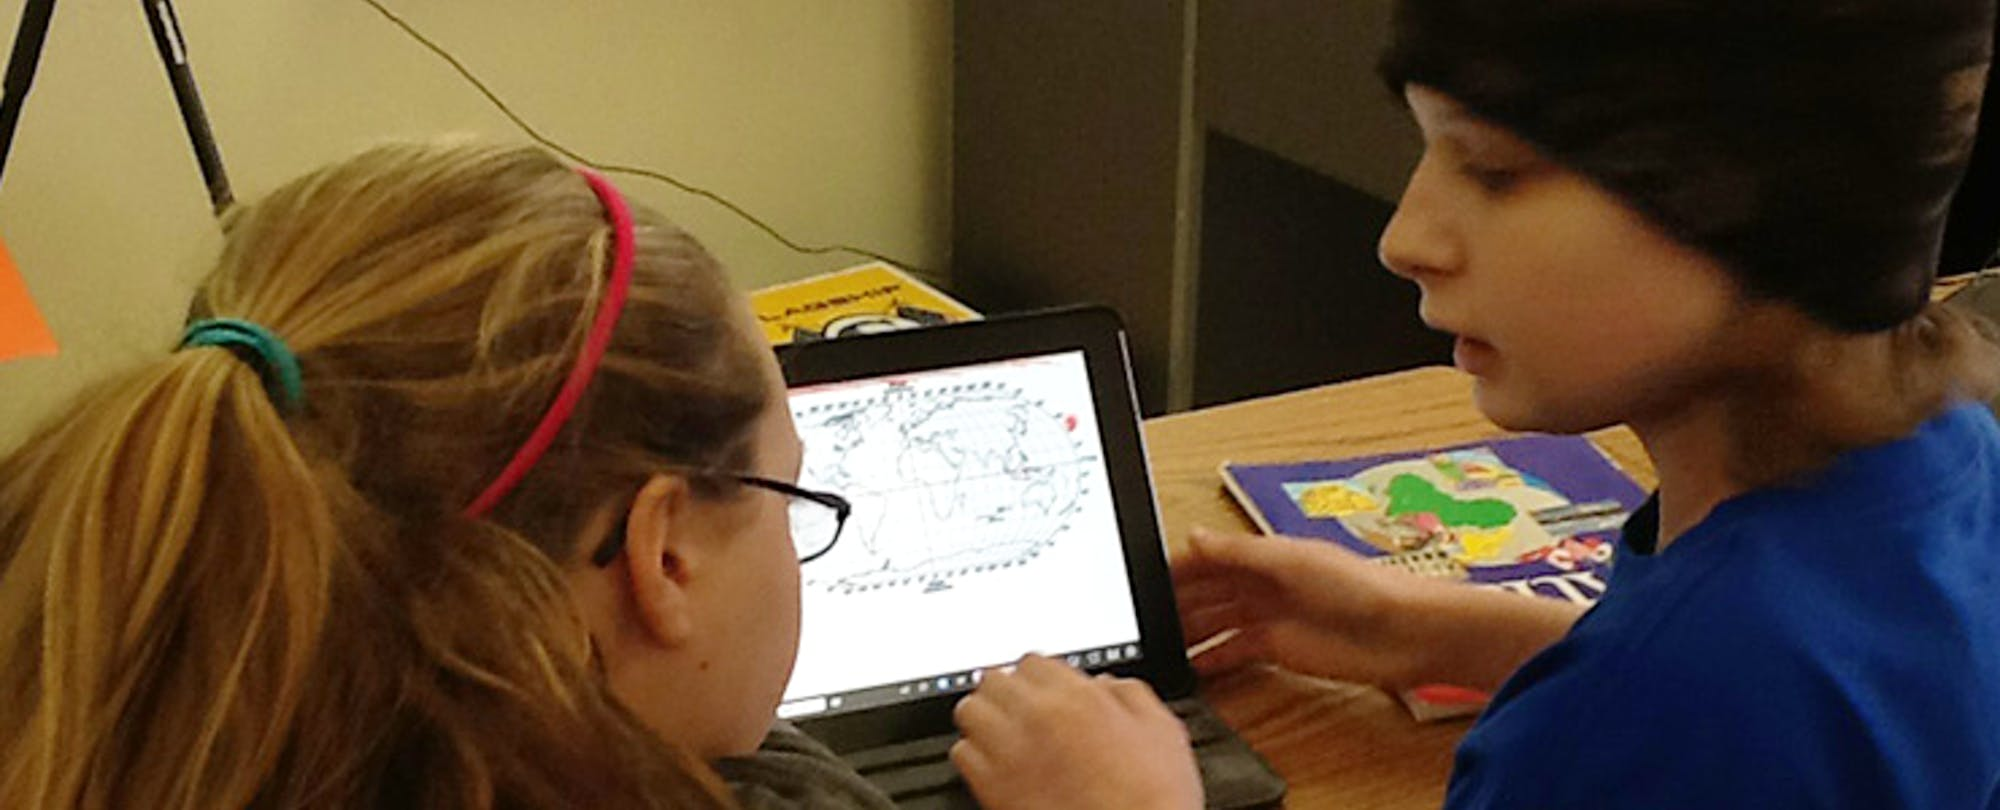 Missions and Network-Building: How One Rural District is Making the Edtech Transition